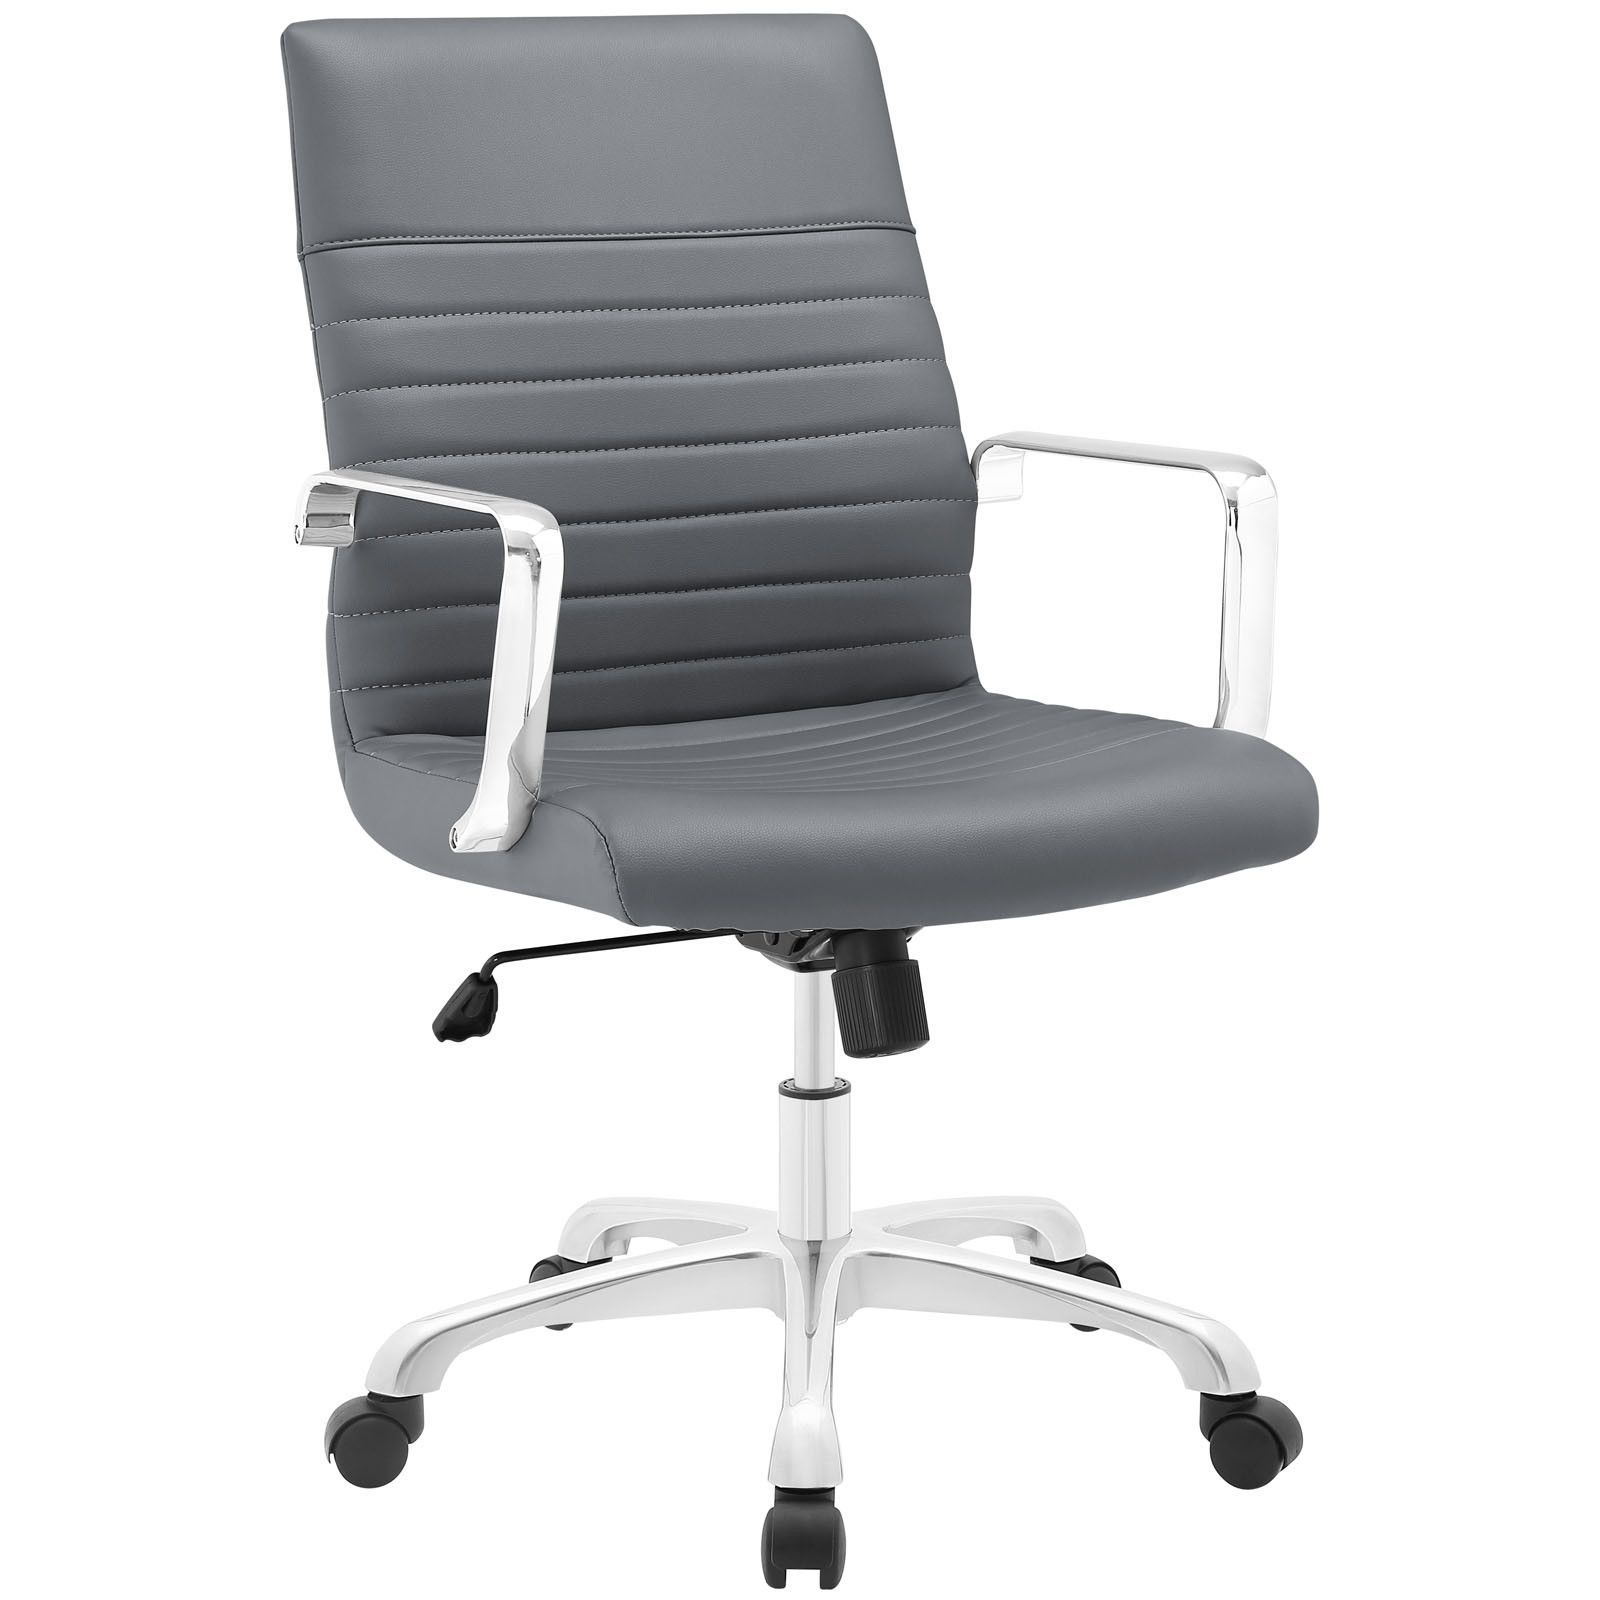 Swivel Chair Office Warehouse Cover Rentals Peterborough Finesse Mid Back Products